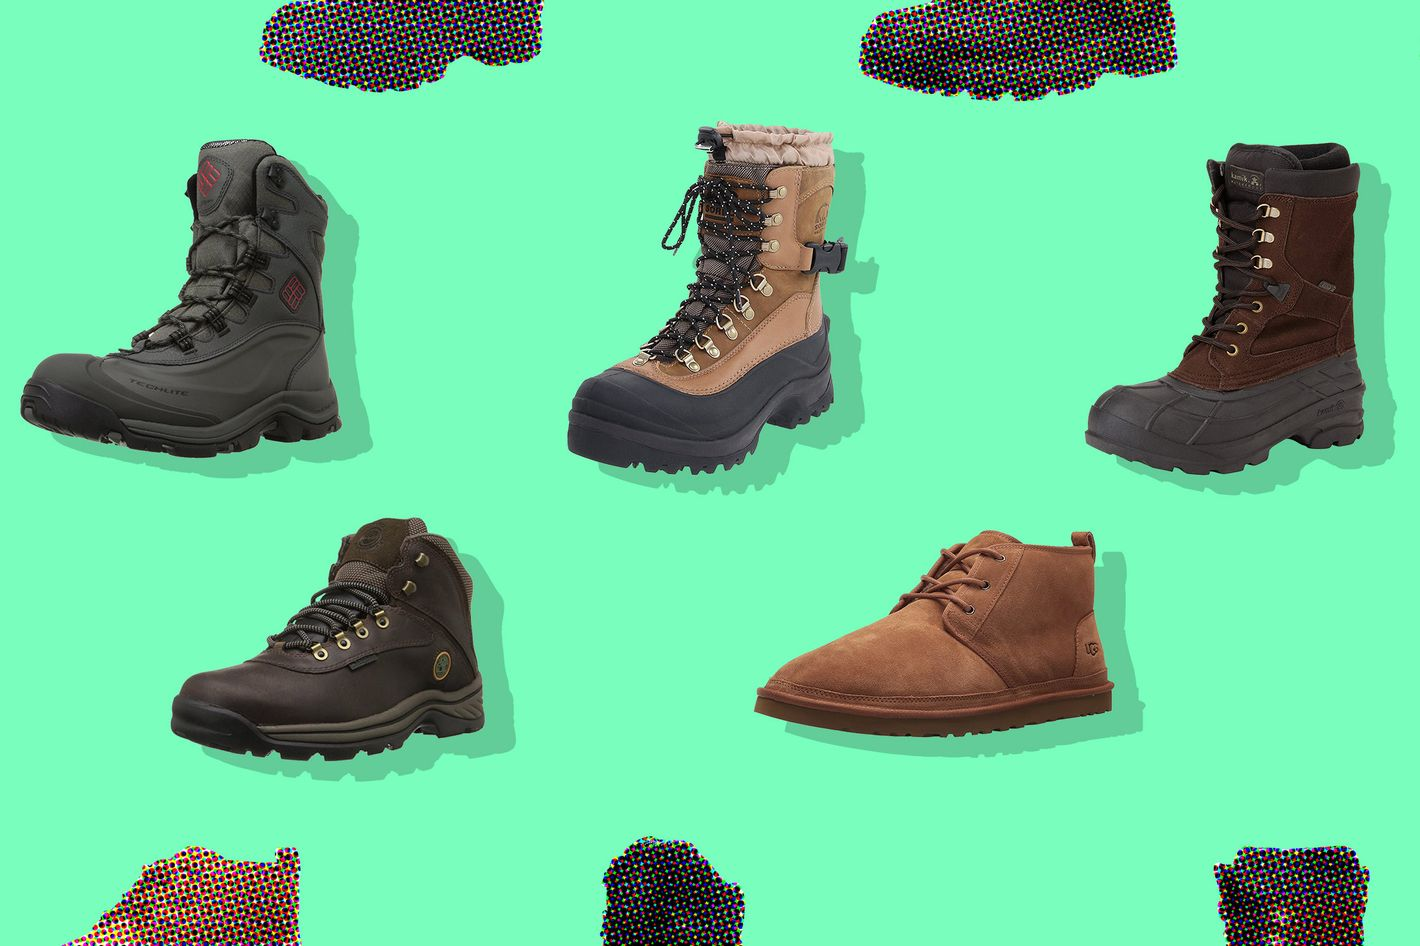 Best Men\'s Winter Boots on Amazon, According to Reviewers